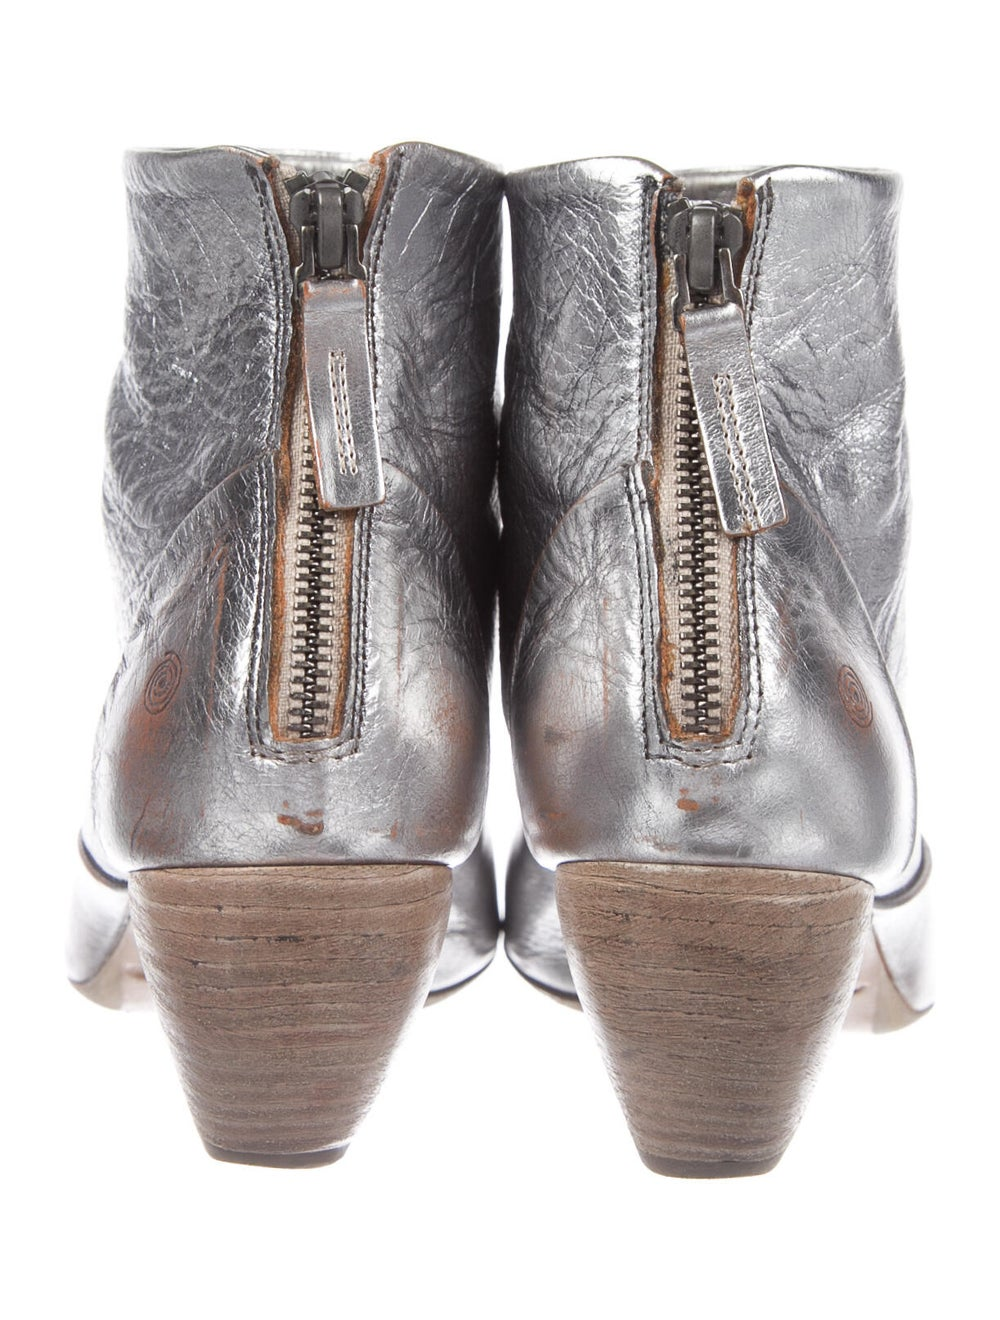 Marsèll Signature Logo Leather Boots Metallic - image 4